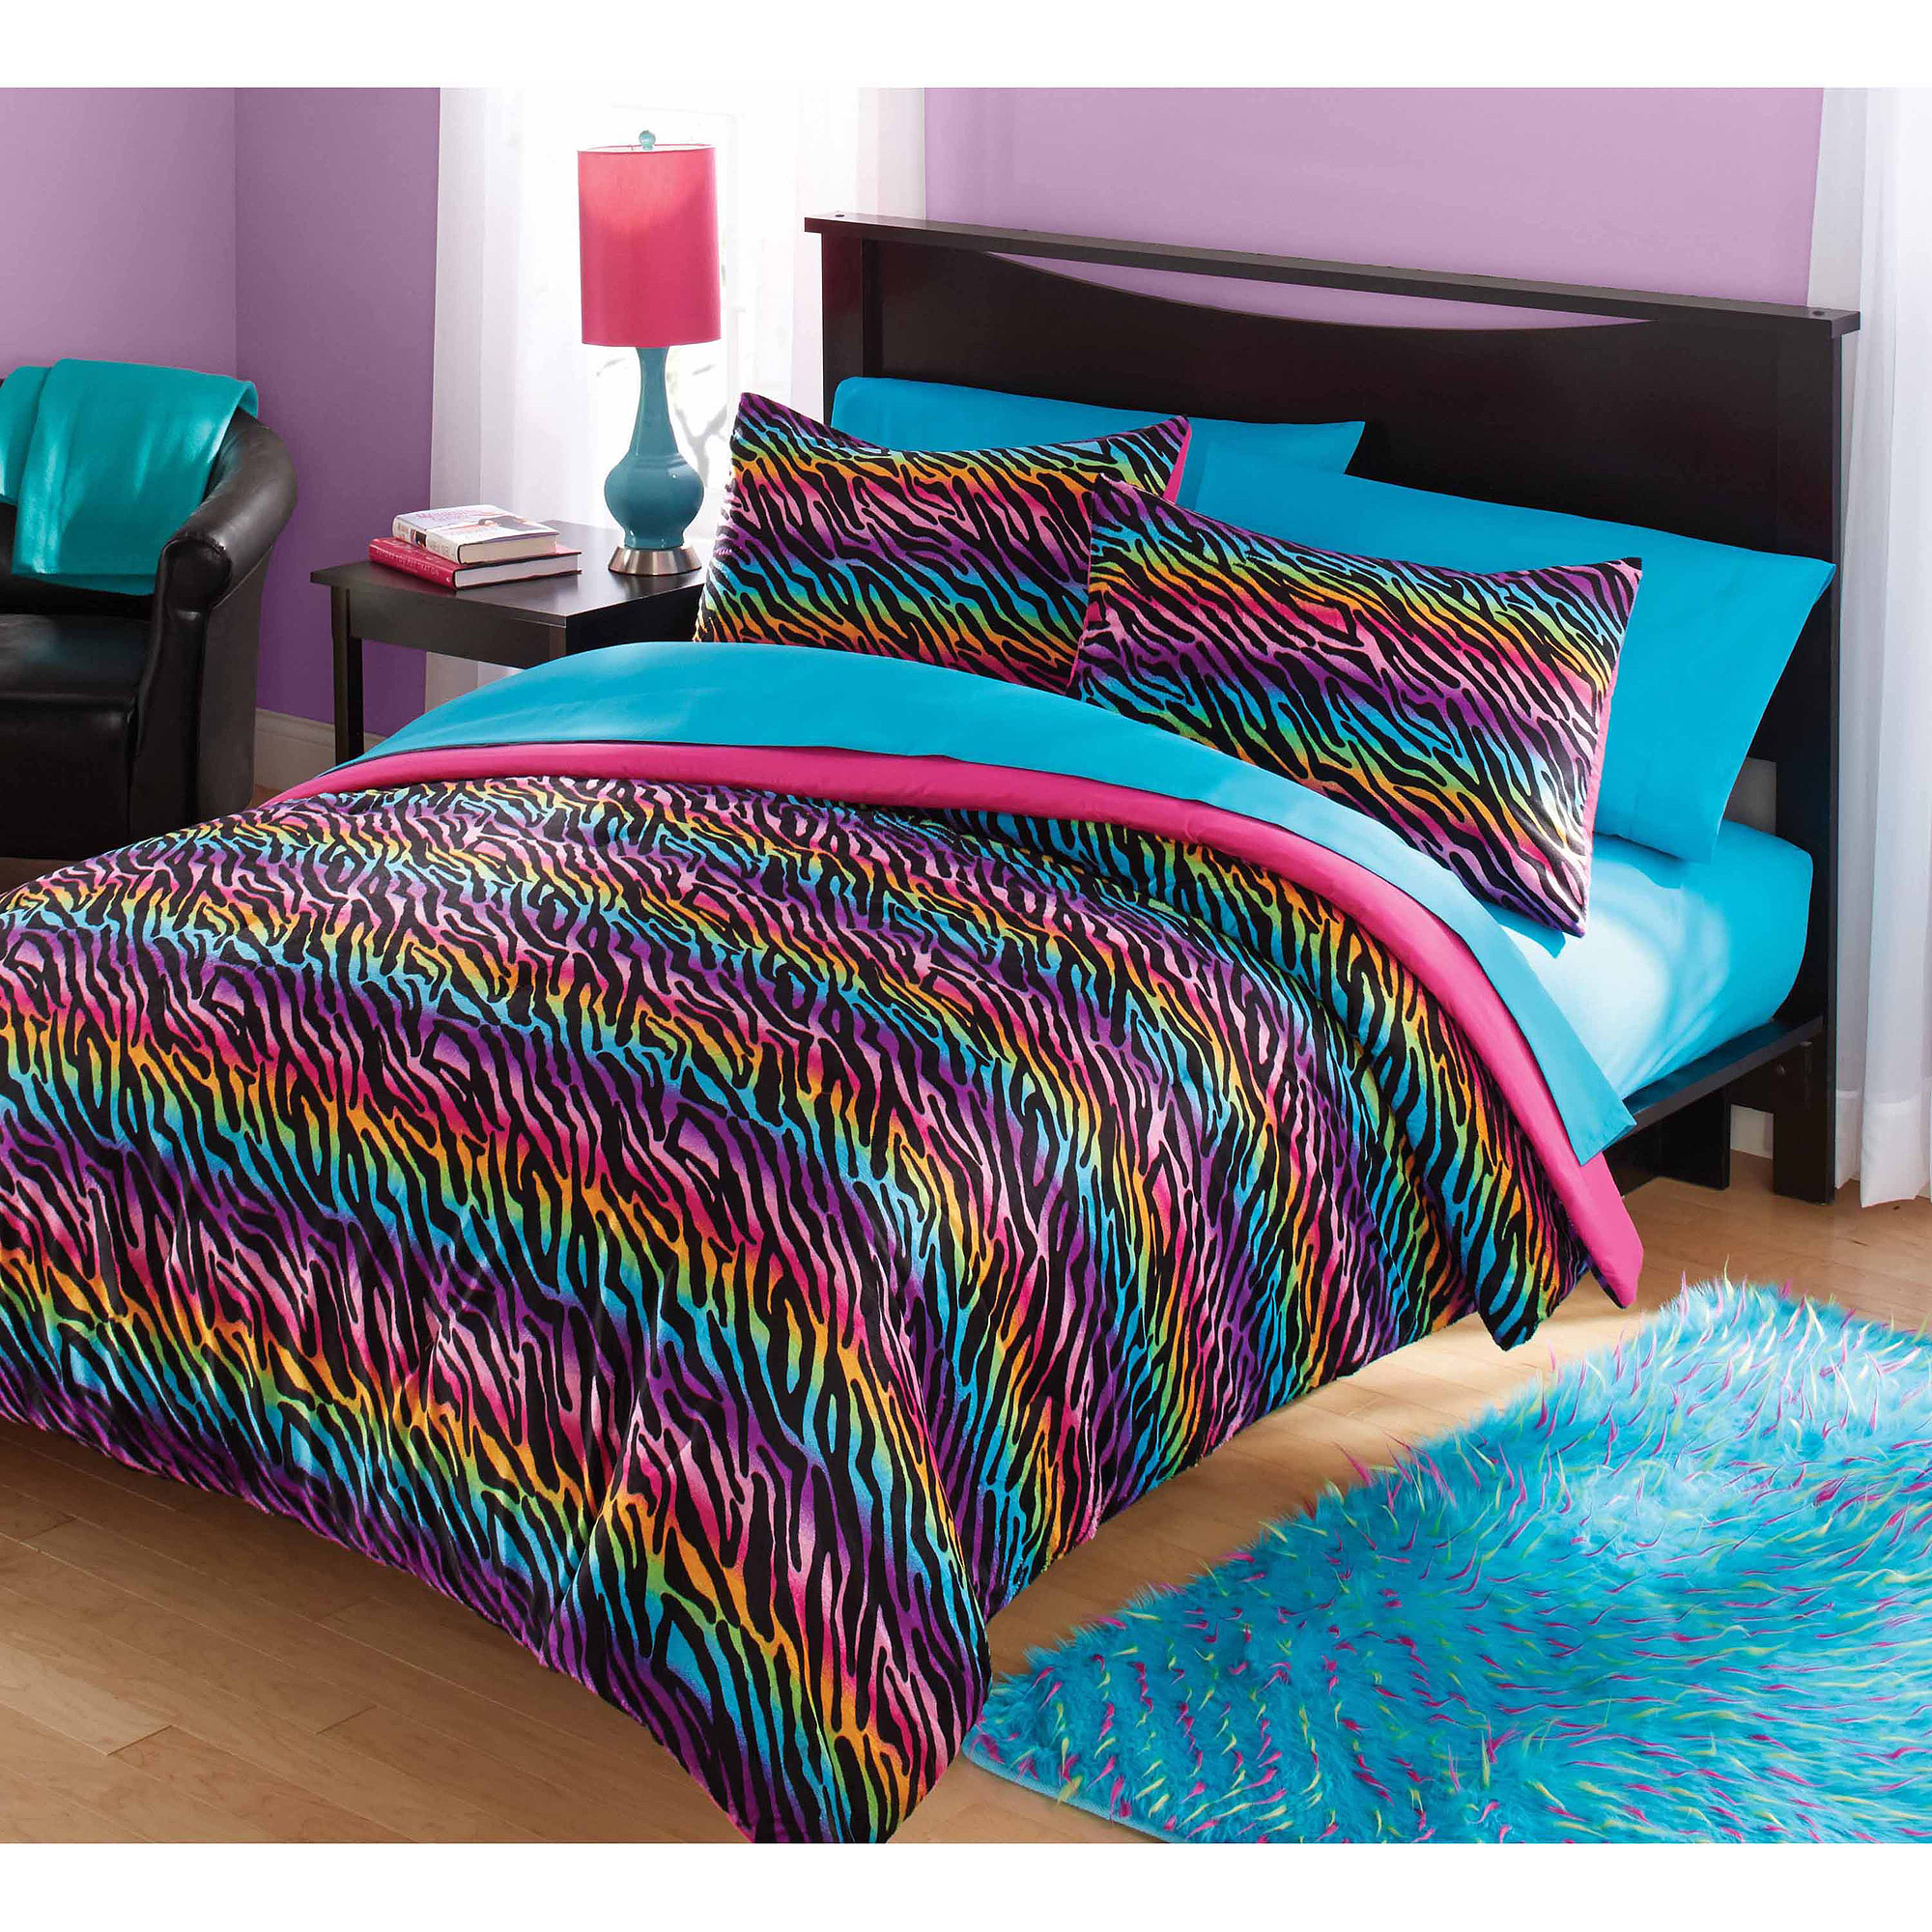 Your Zone Mink Rainbow Zebra Bedding Comforter Set   Walmart.com